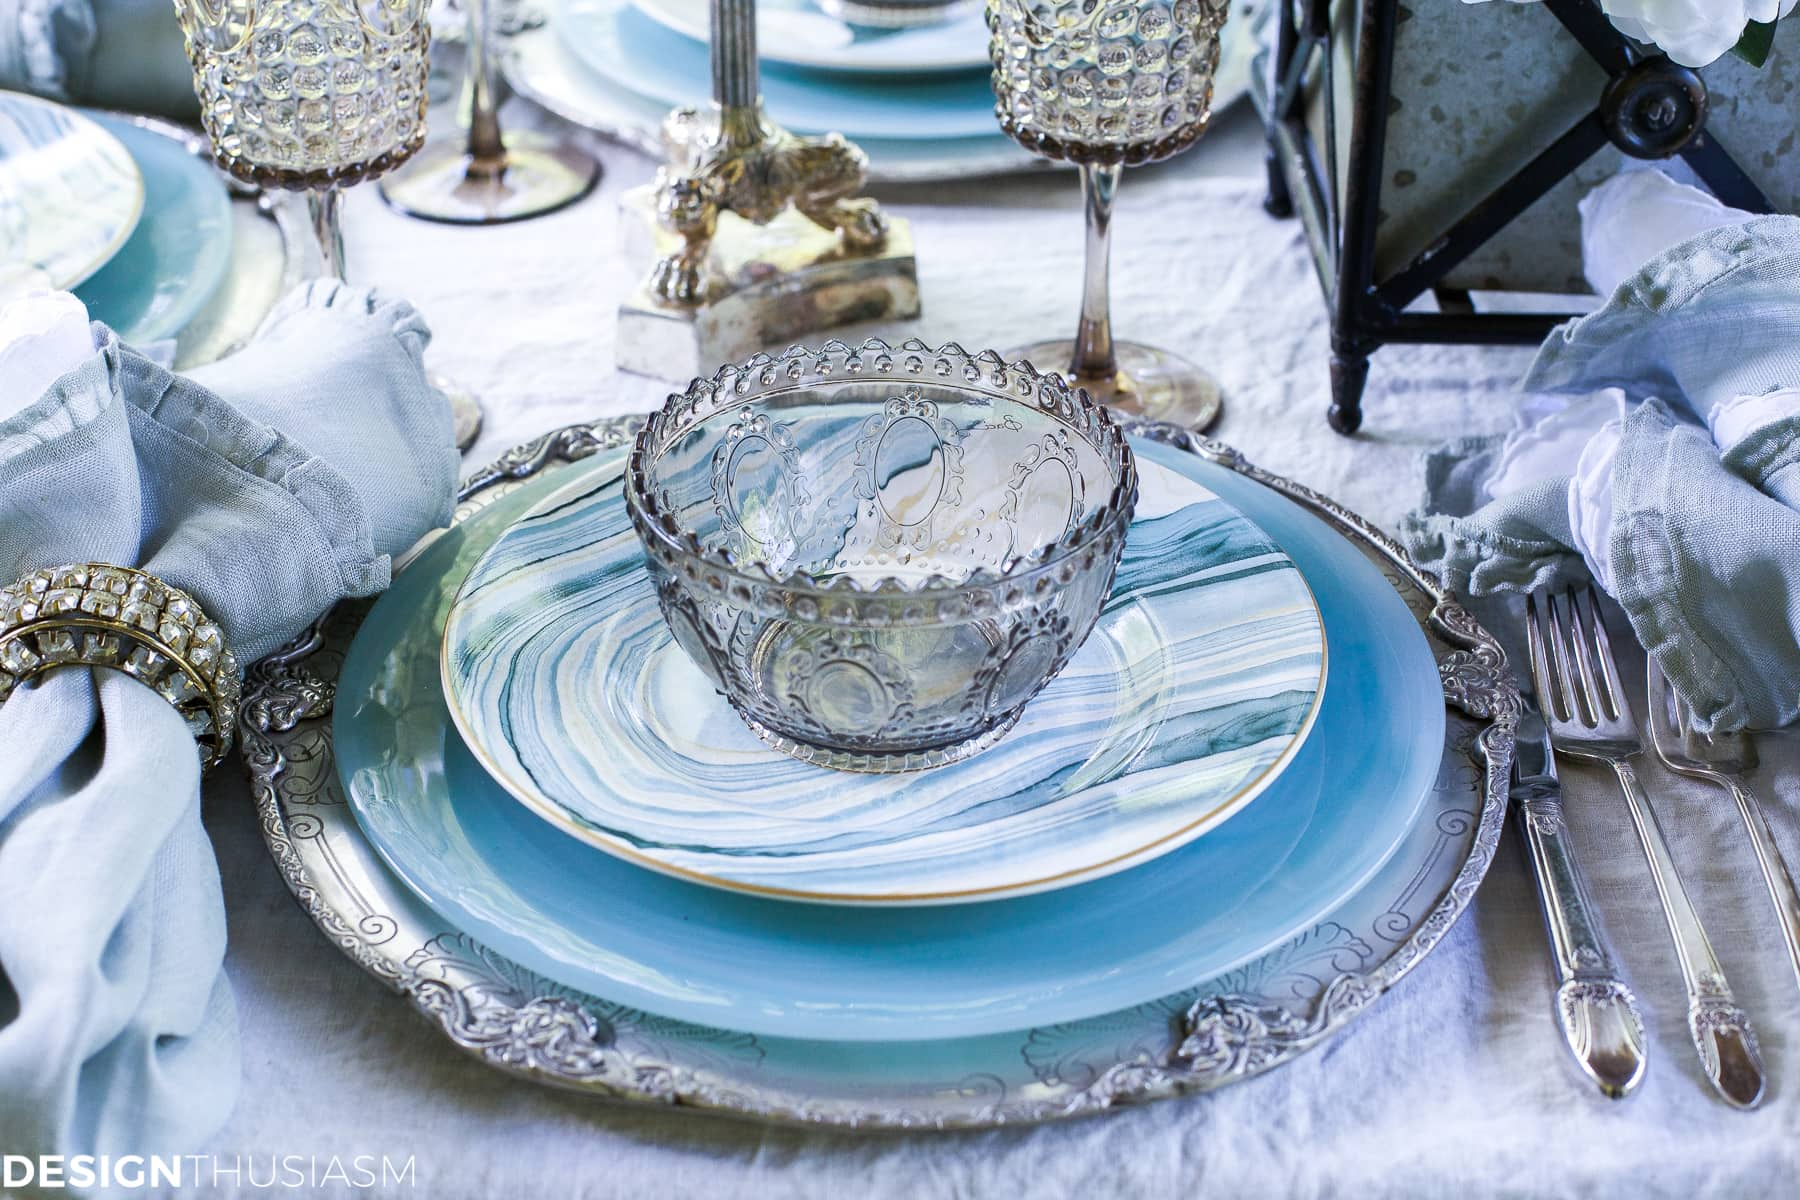 Seaside Decor | Setting a Summer Table with Coastal Dinnerware - designthusiasm.com & Seaside Decor: Setting a Summer Table with Coastal Dinnerware